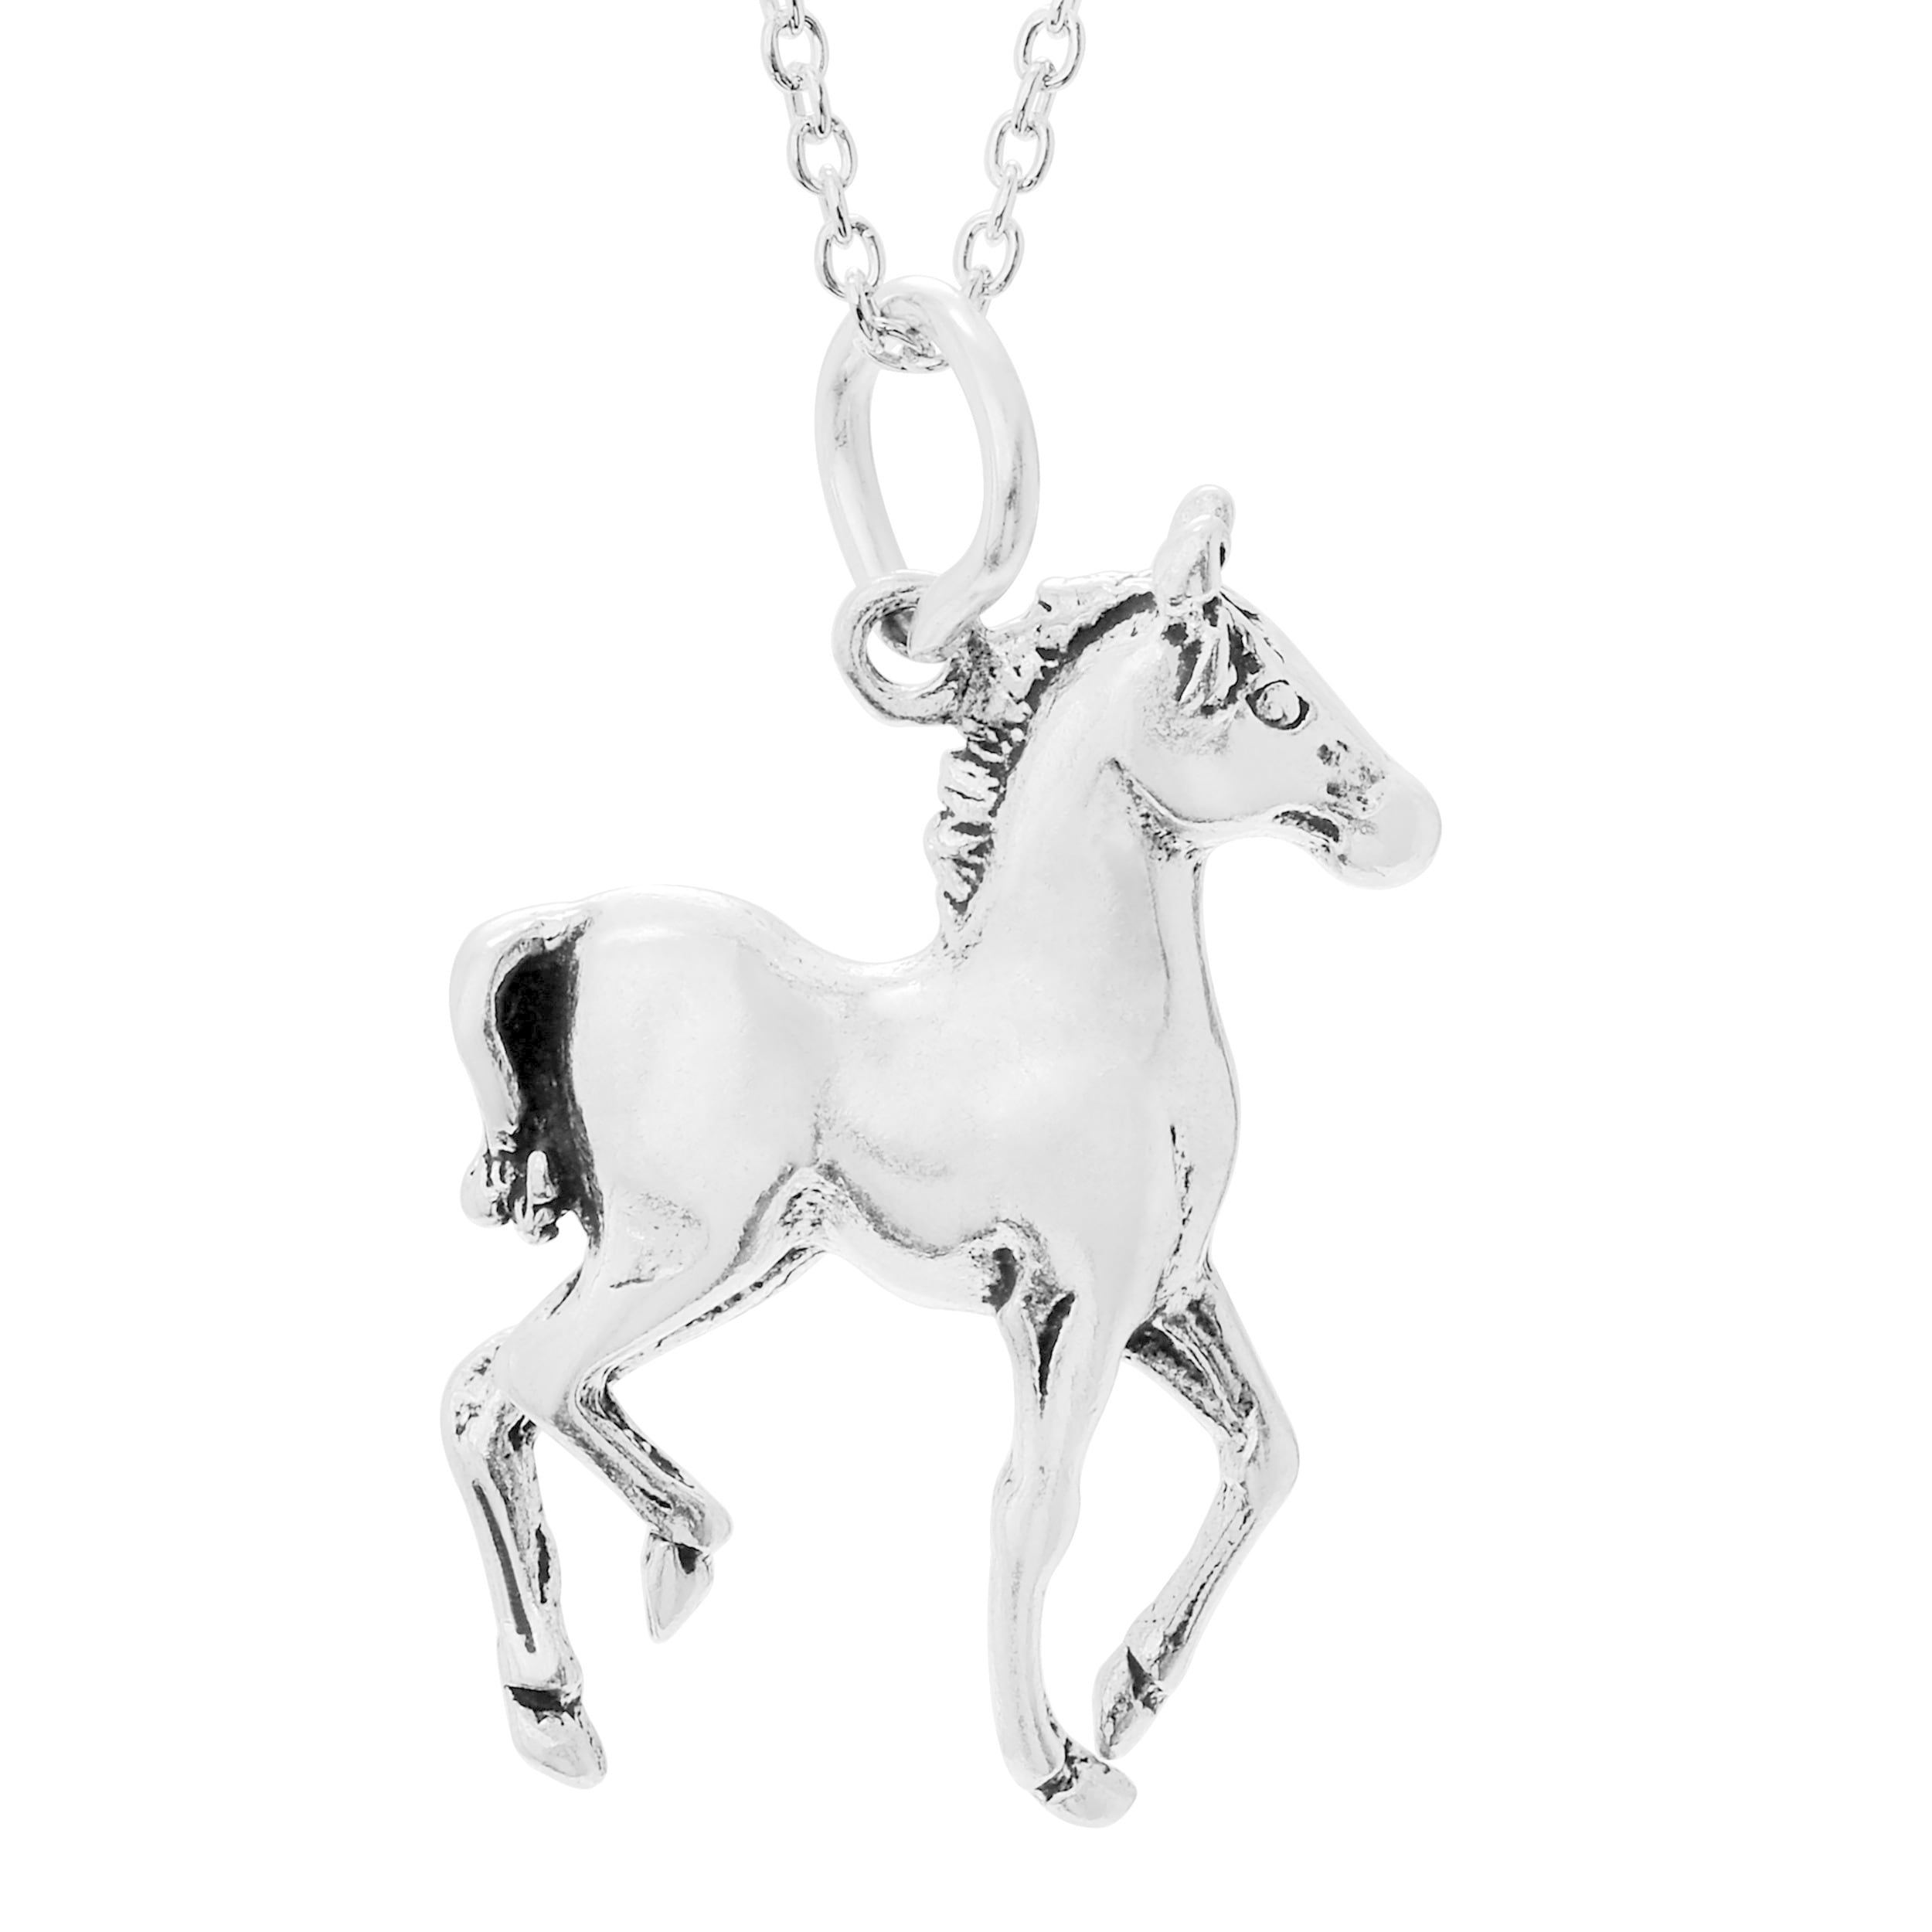 shipping product overstock horse silver sterling necklace jewelry on orders free pendant watches over